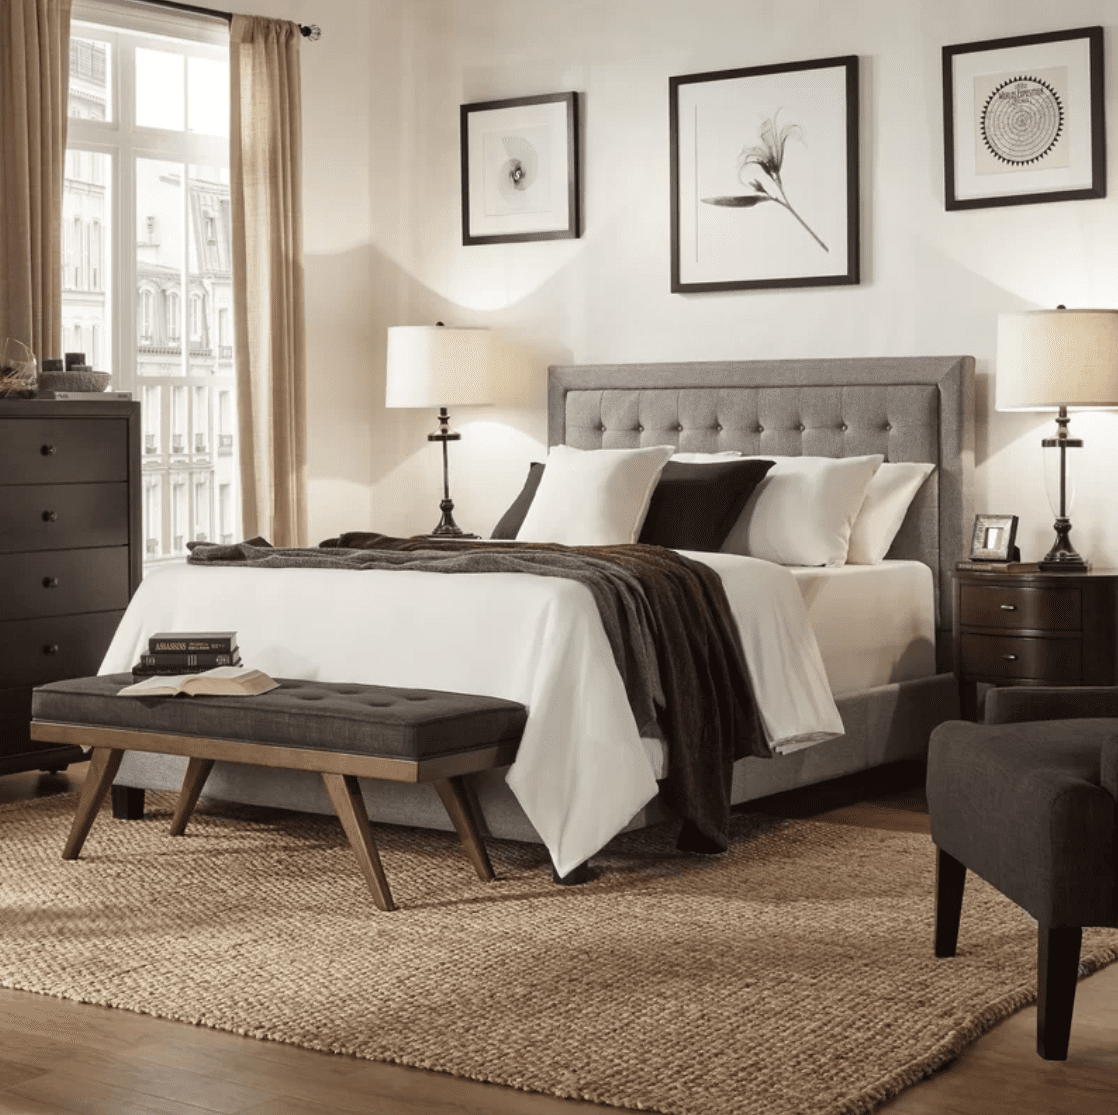 The 7 Best Places To Buy A Bed In 2020